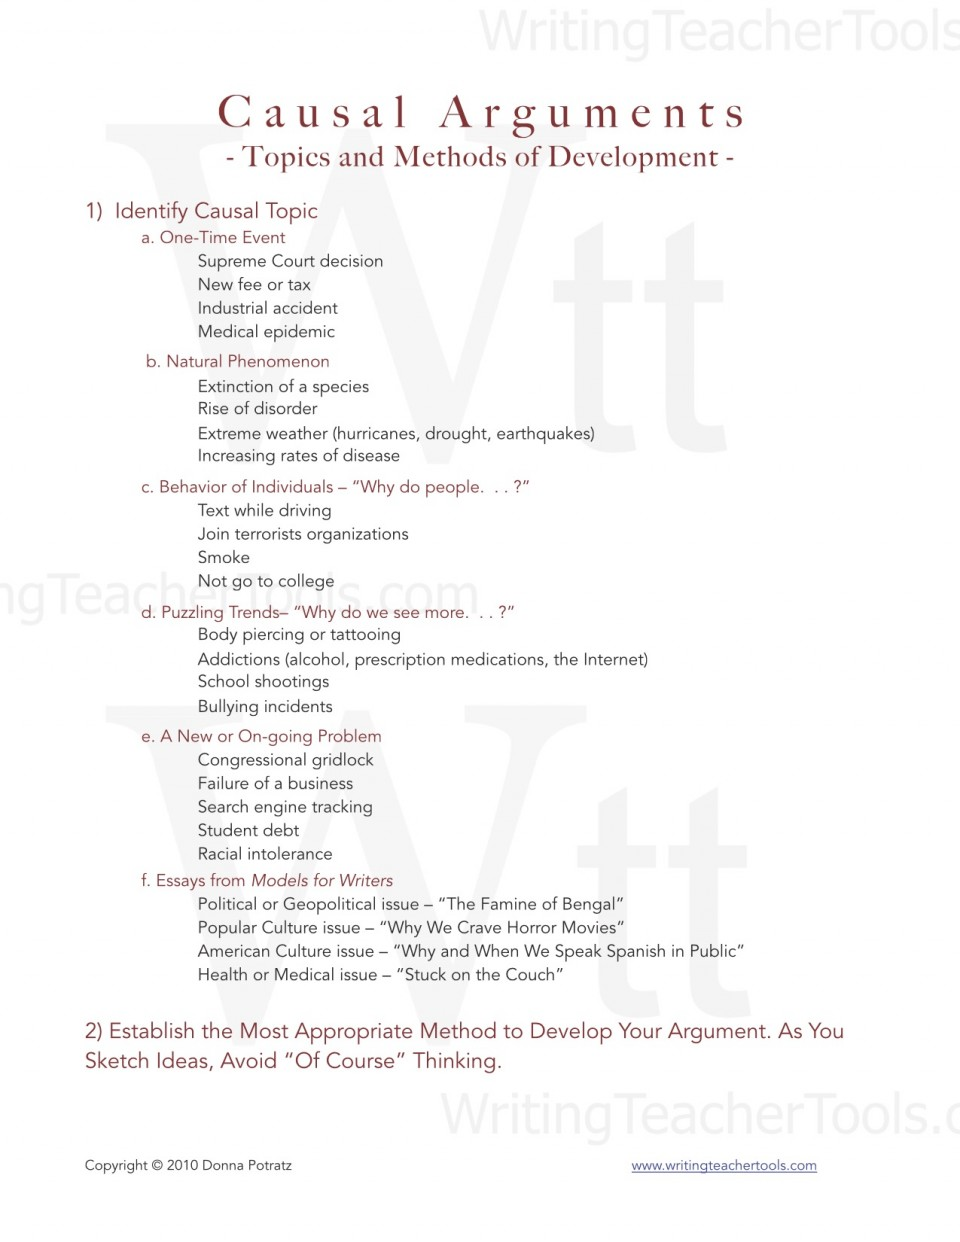 005 Essay Example Evaluative Causal Topics For Argument And Methods Of Develo Evaluation Marvelous Debate Prompts Persuasive High School 960